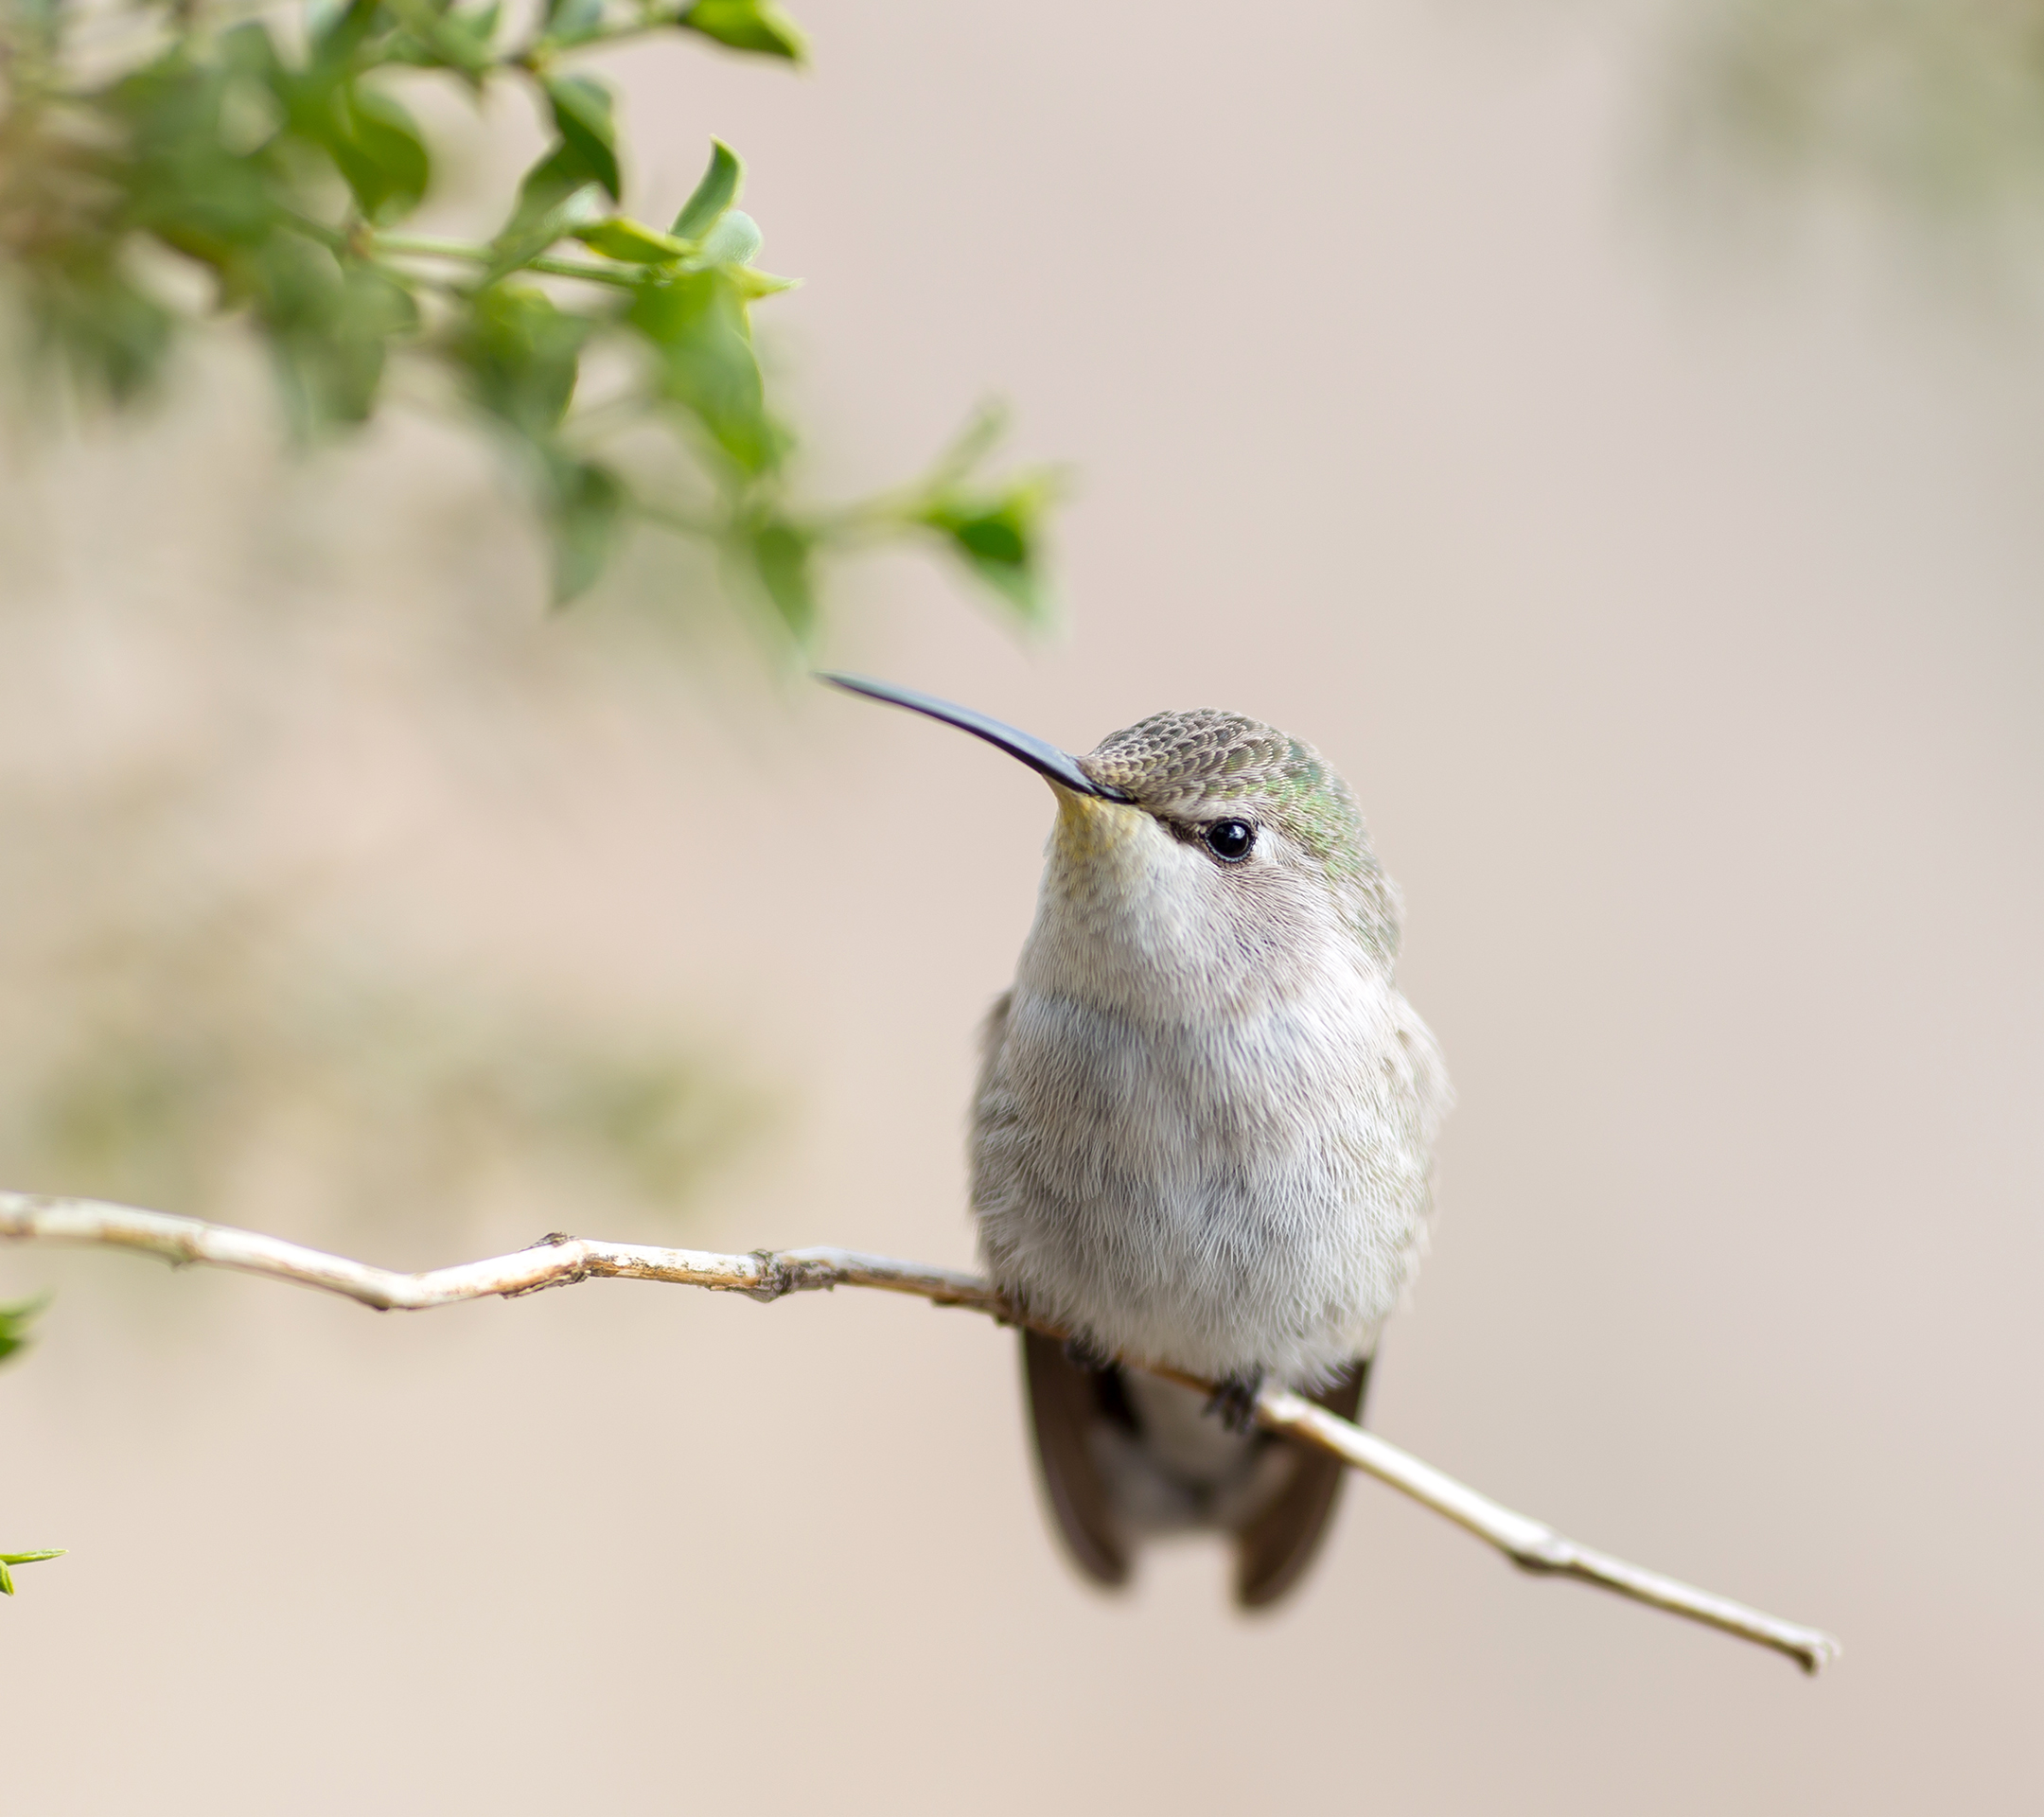 A Sweet Bird On The Thin Branch